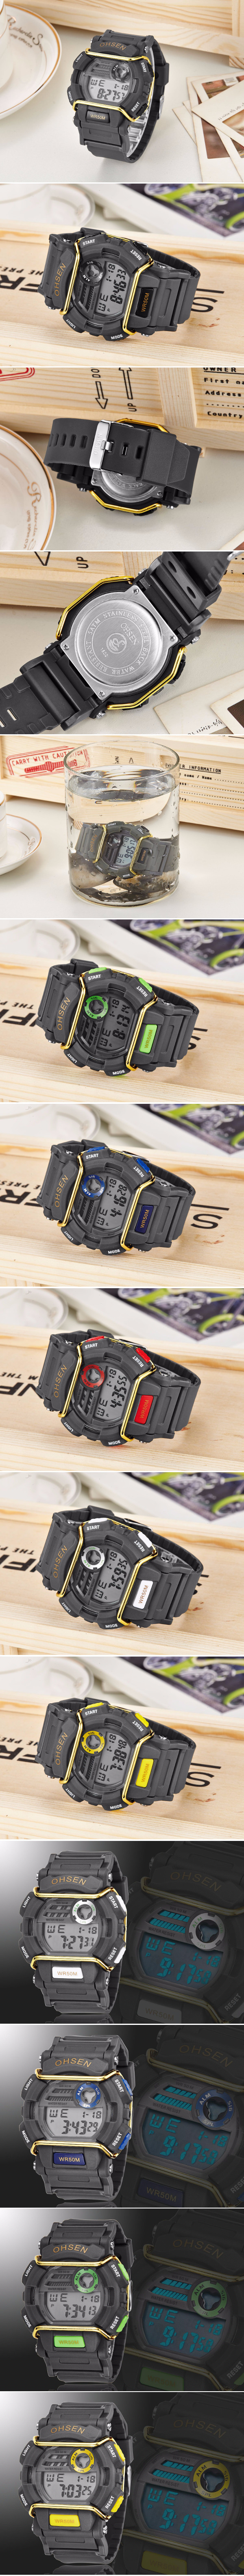 OHSEN 1602 Digital LED Alarm Waterproof Men Fashion Military Sport Wrist Watch